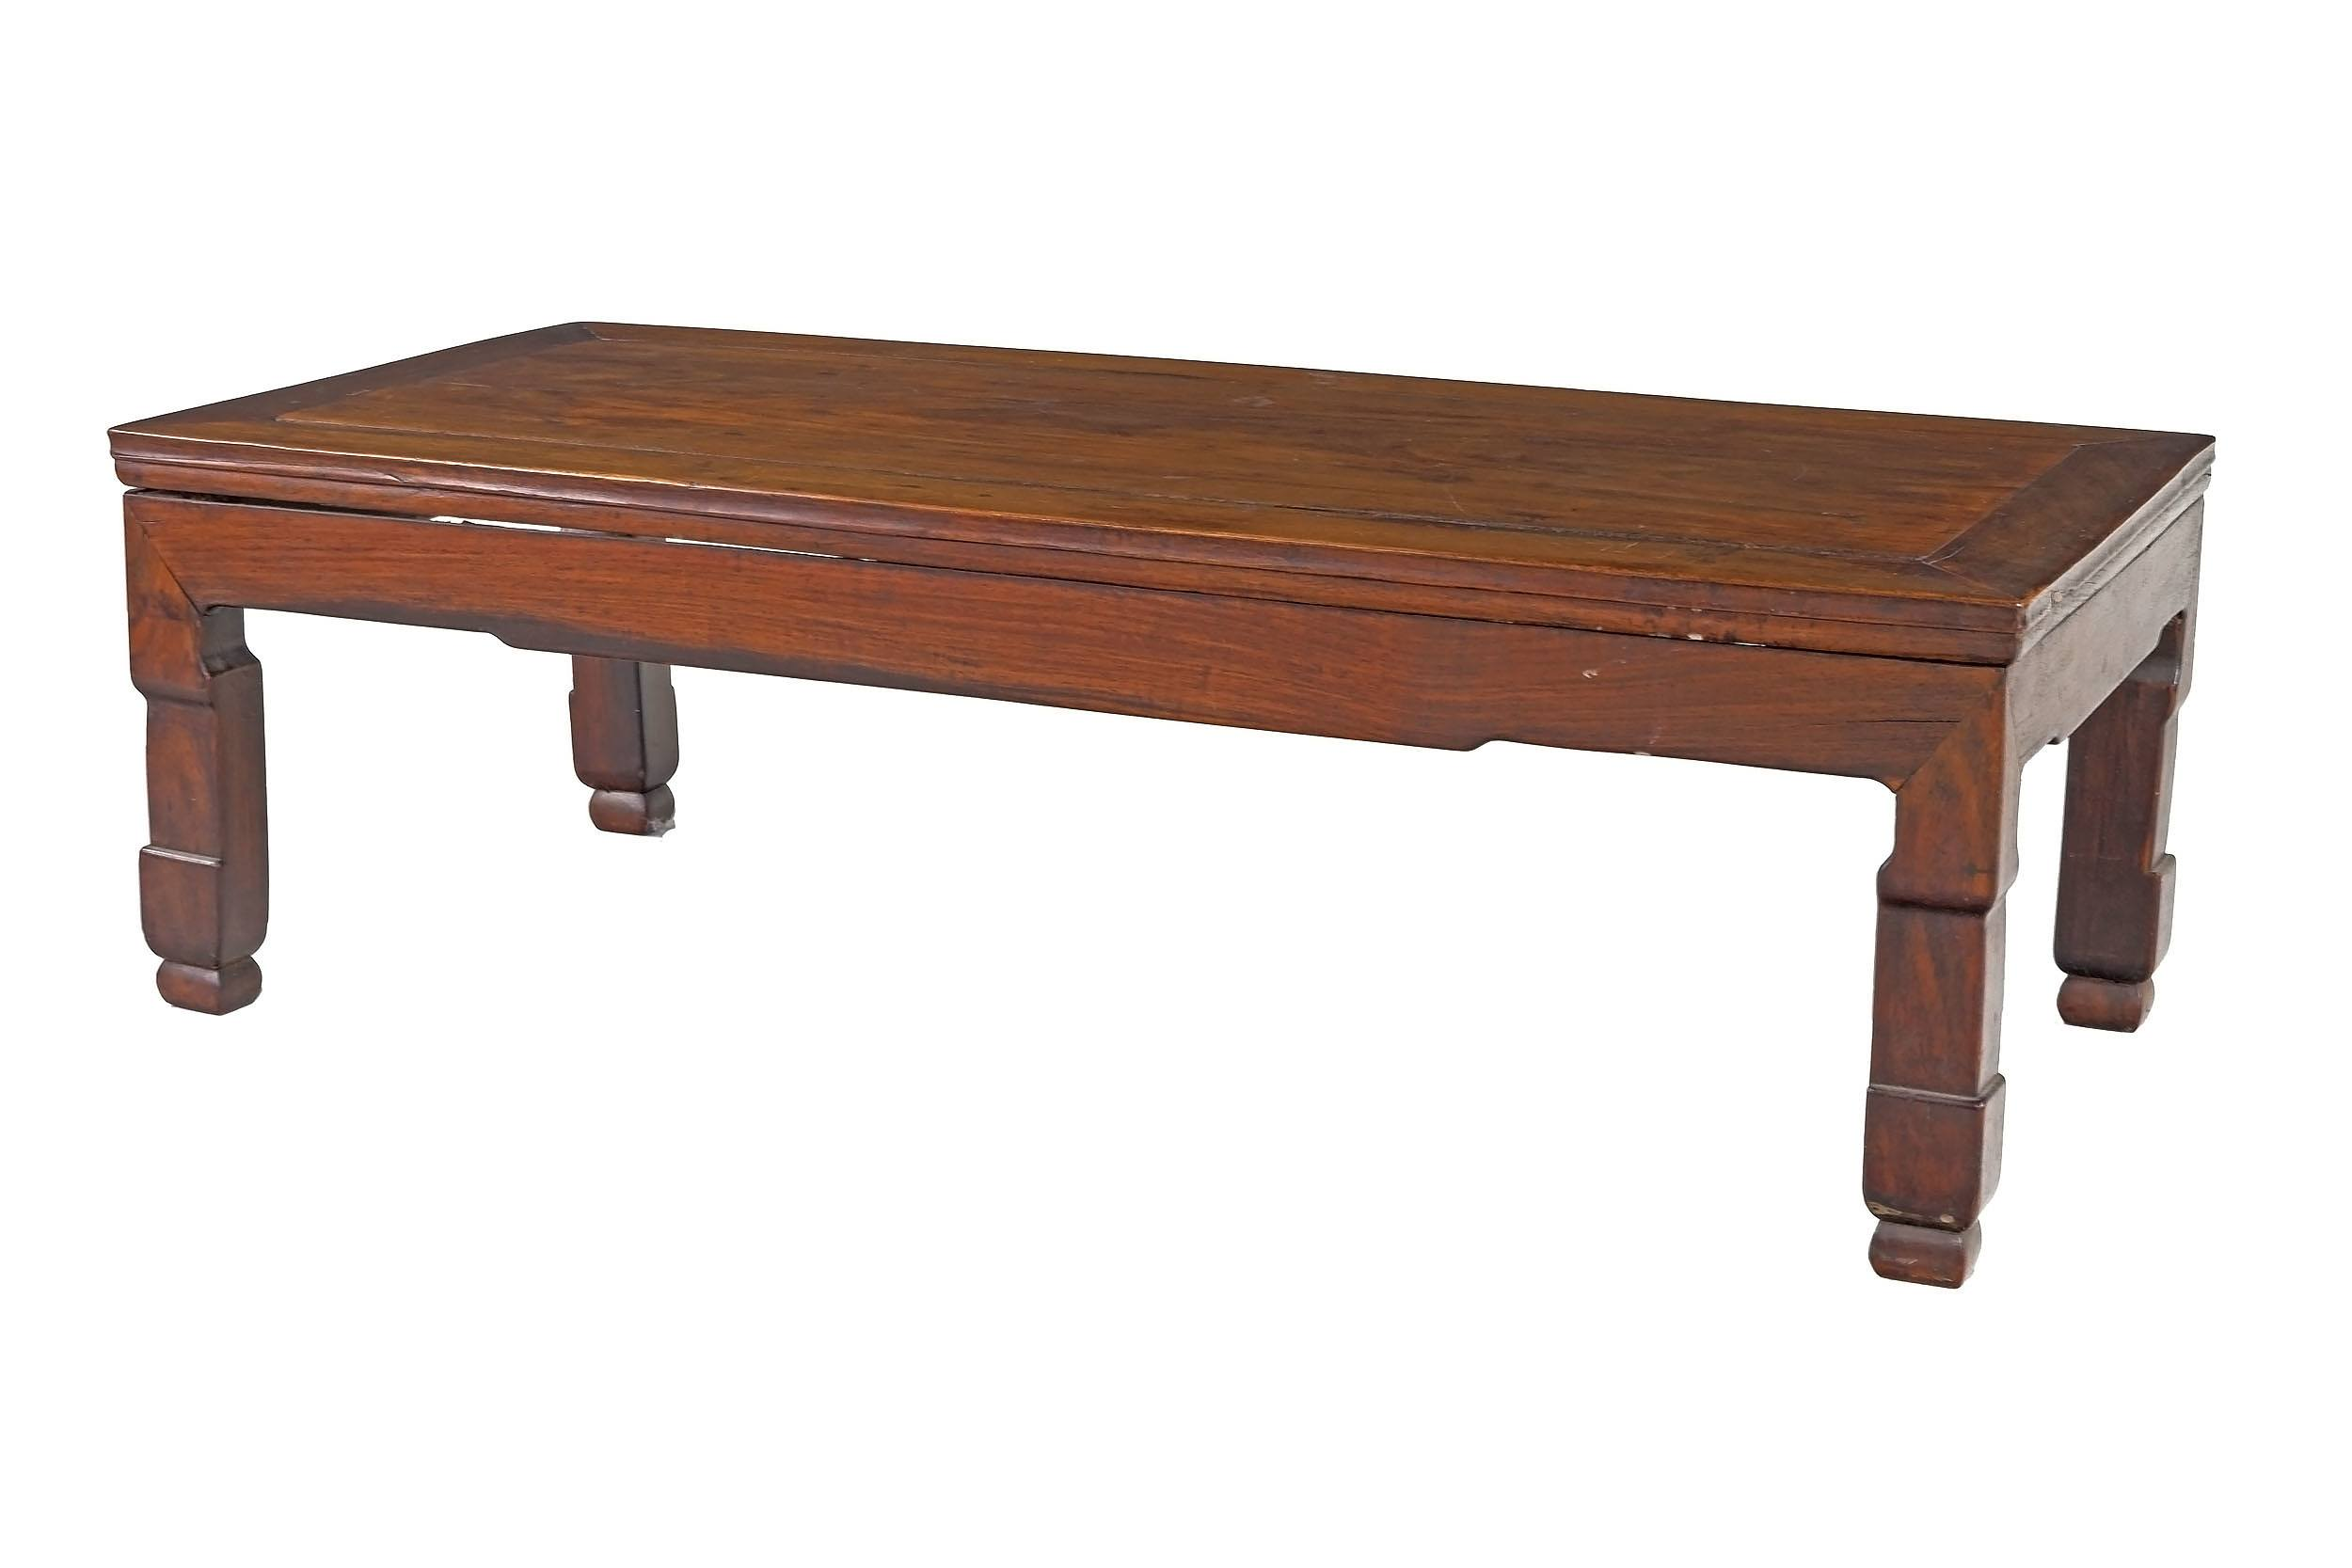 'Chinese Hongmu Rosewood Kang Table, 19th or Early 20th Century'